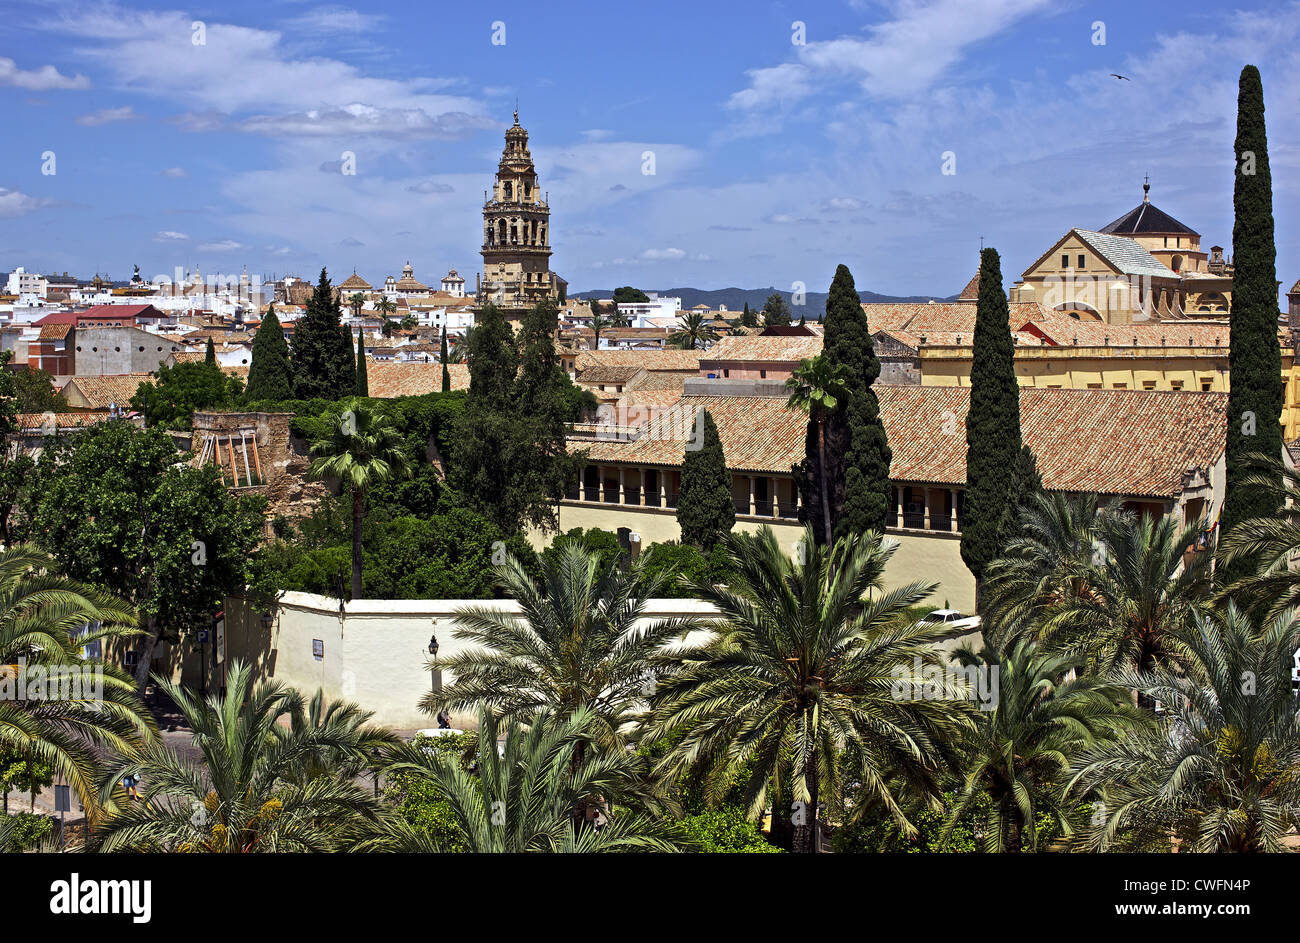 Spain. Andalusia. Cordoba. Panorama of the city with the bell tower of the Mosque-Cathedral. Stock Photo